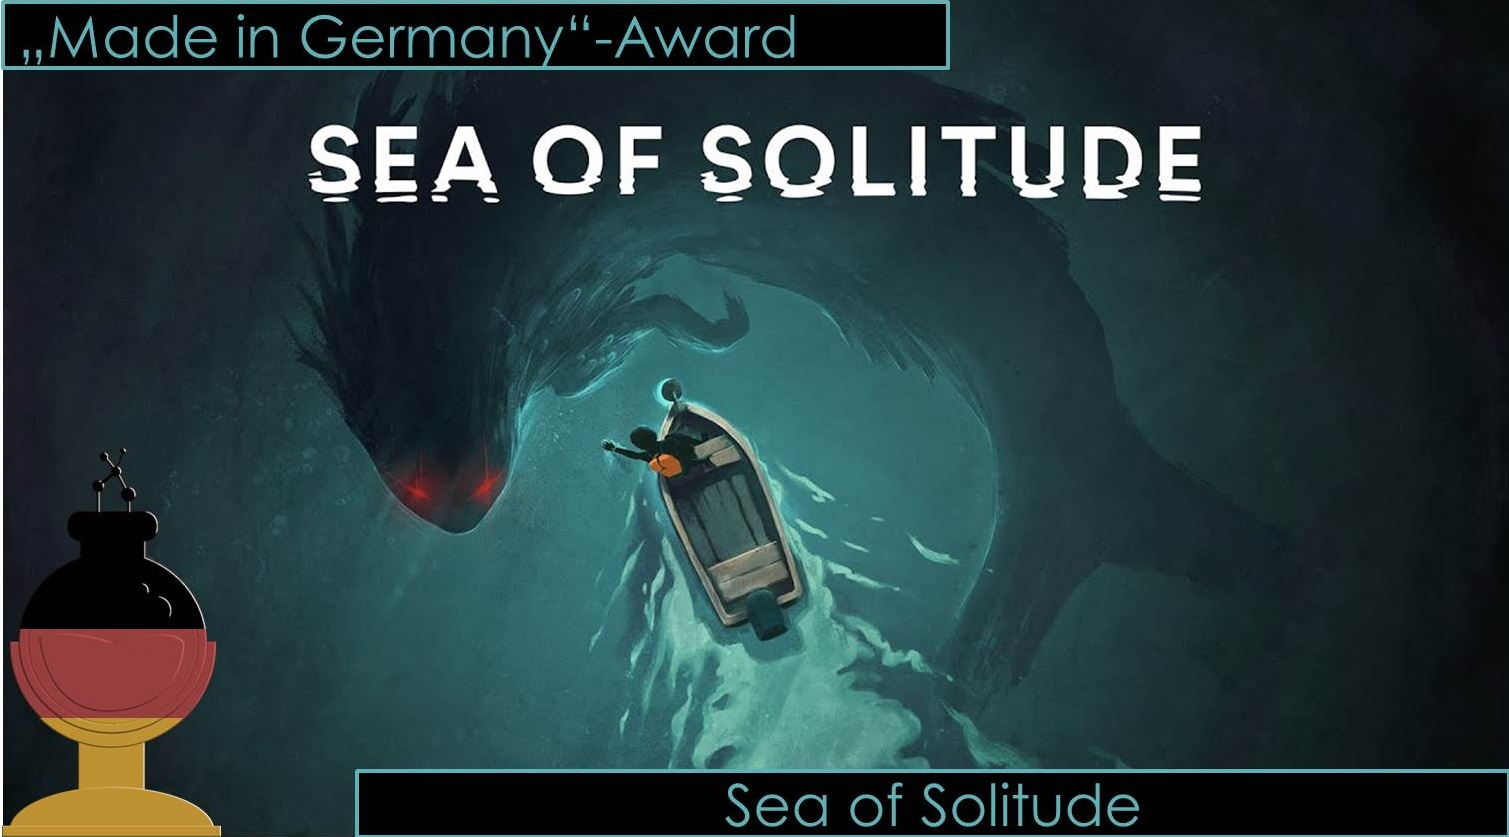 made in germany award e3 2018 awards sea of solitude